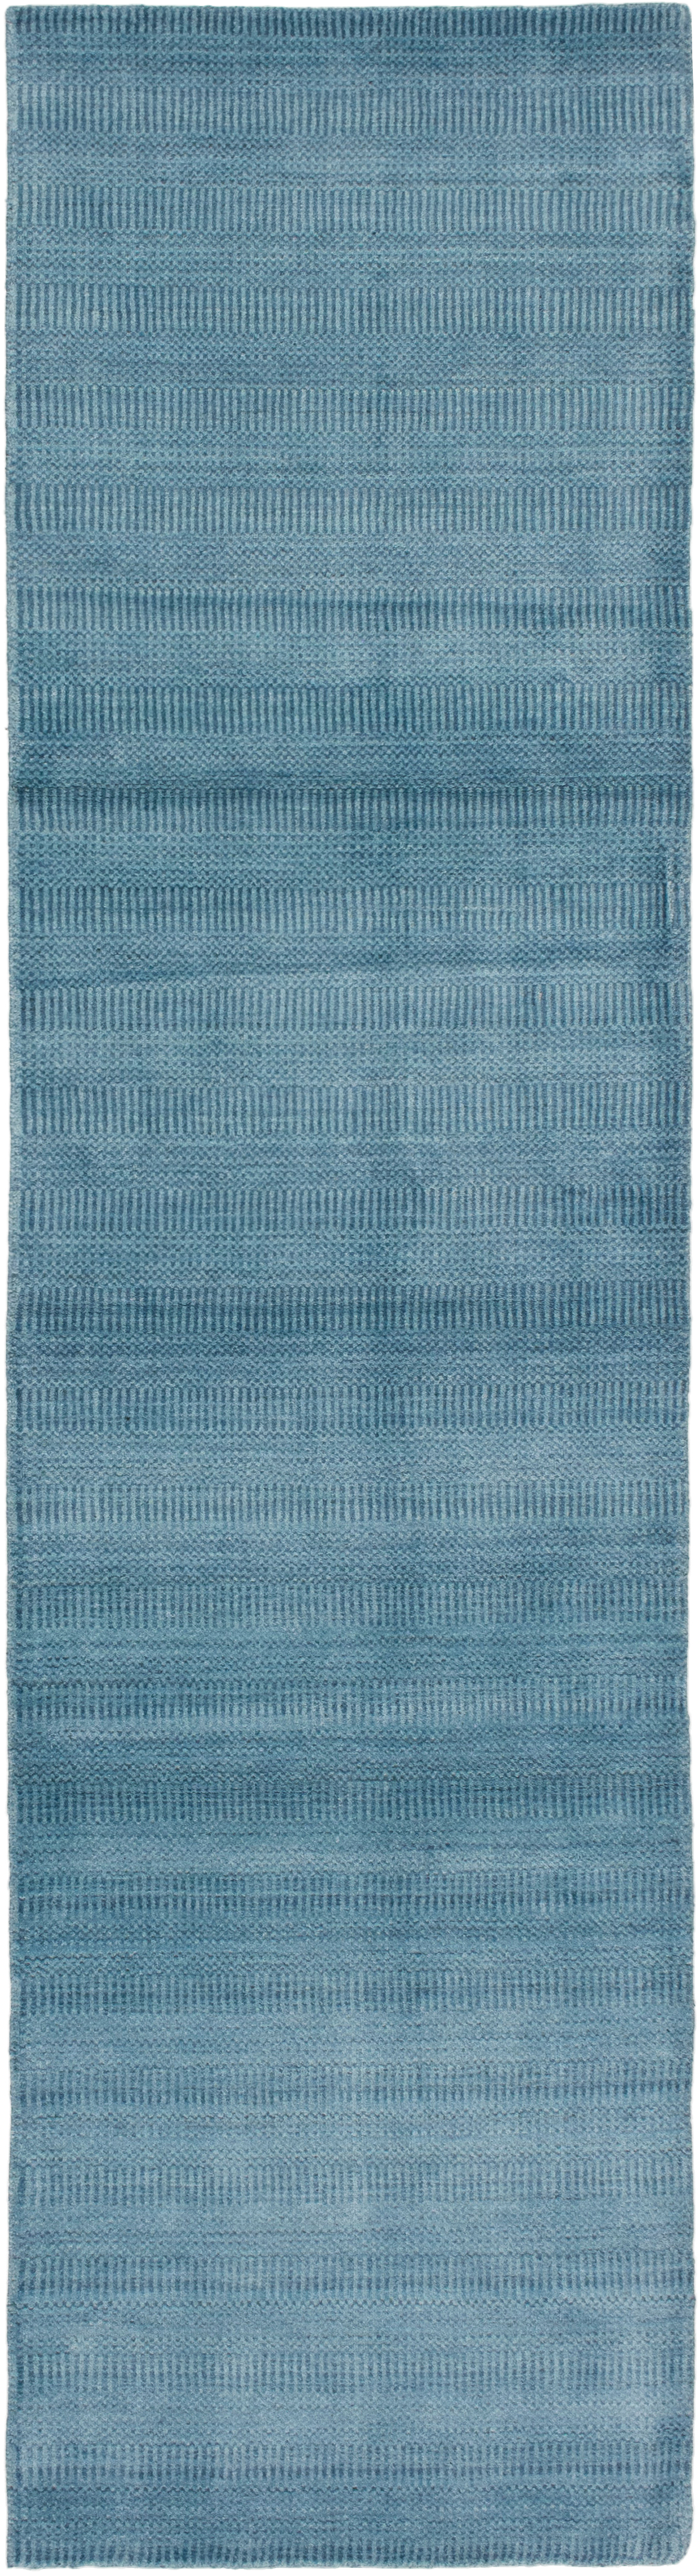 """Hand-knotted Pearl Denim Blue  Rug 2'6"""" x 9'11"""" Size: 2'6"""" x 9'11"""""""